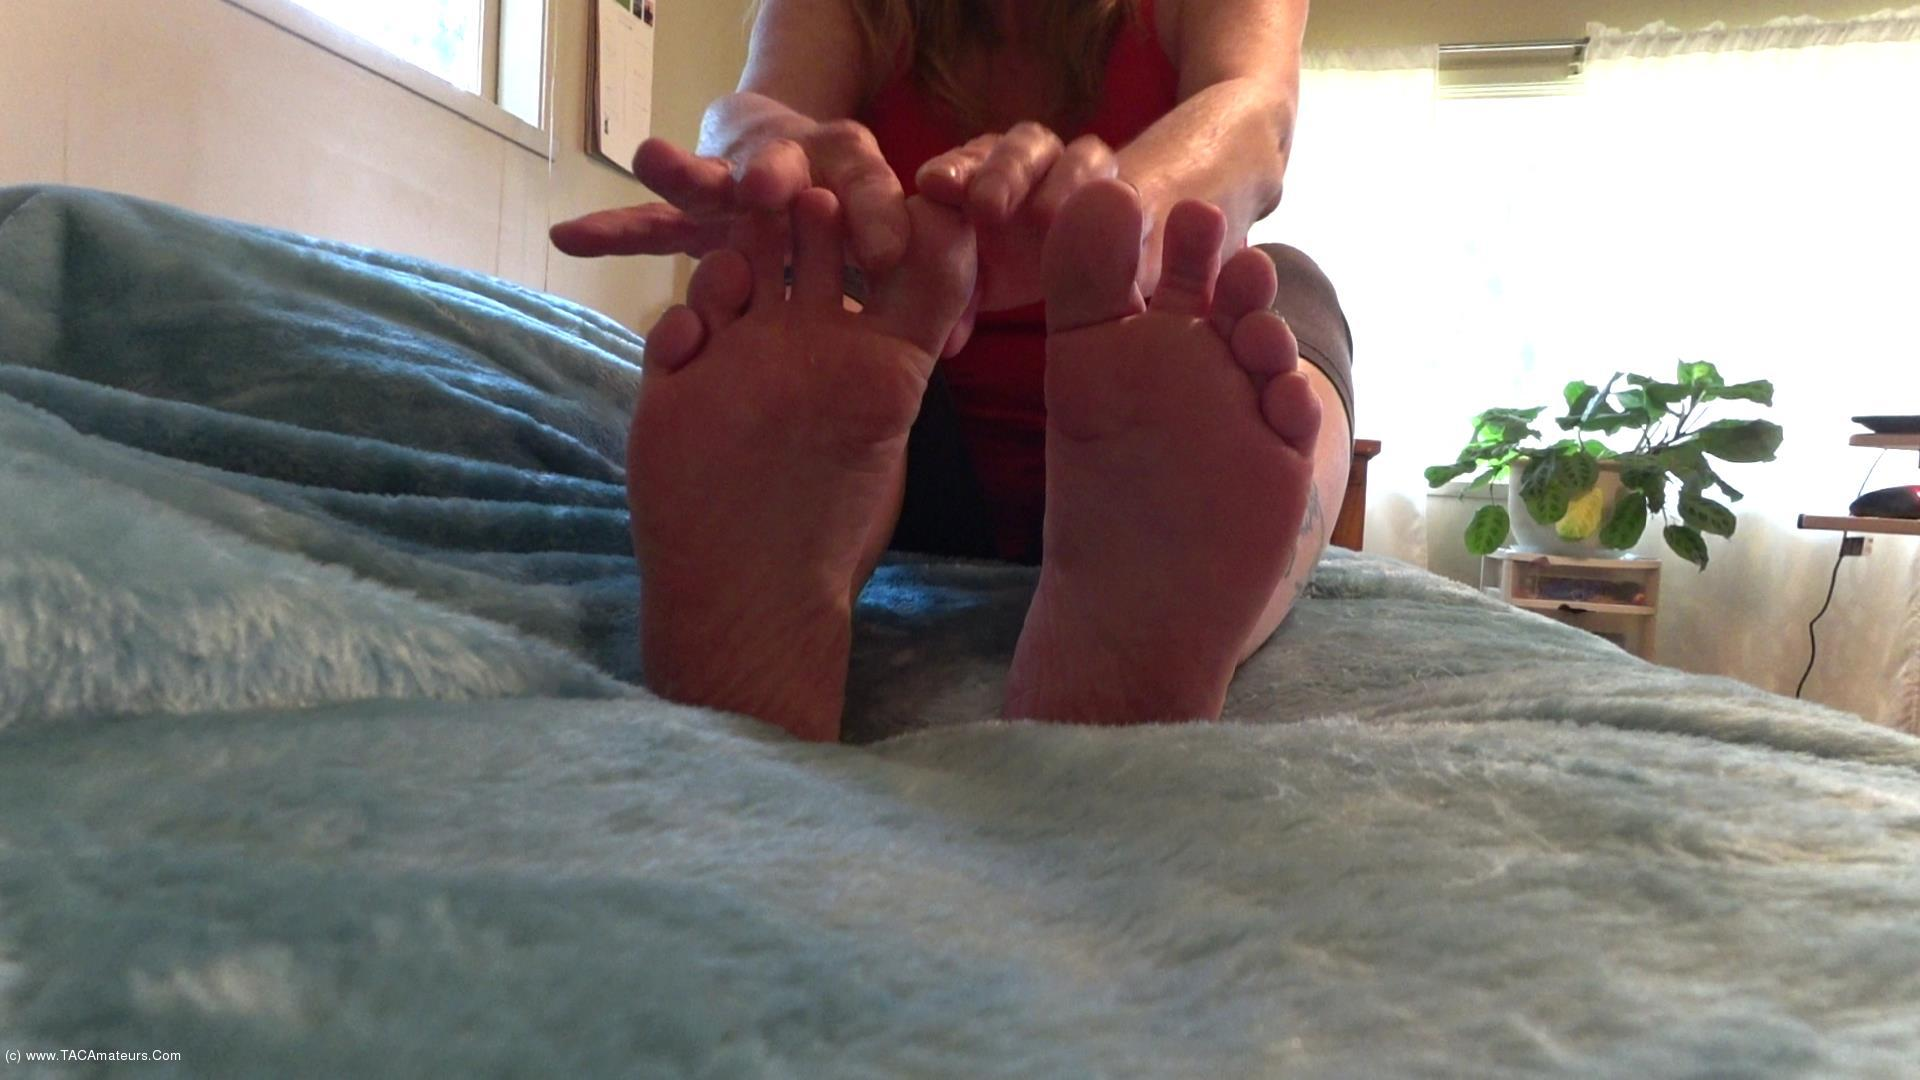 CougarBabeJolee - Sexy Toes To Worship, Wrinkled Soles To Lick scene 3